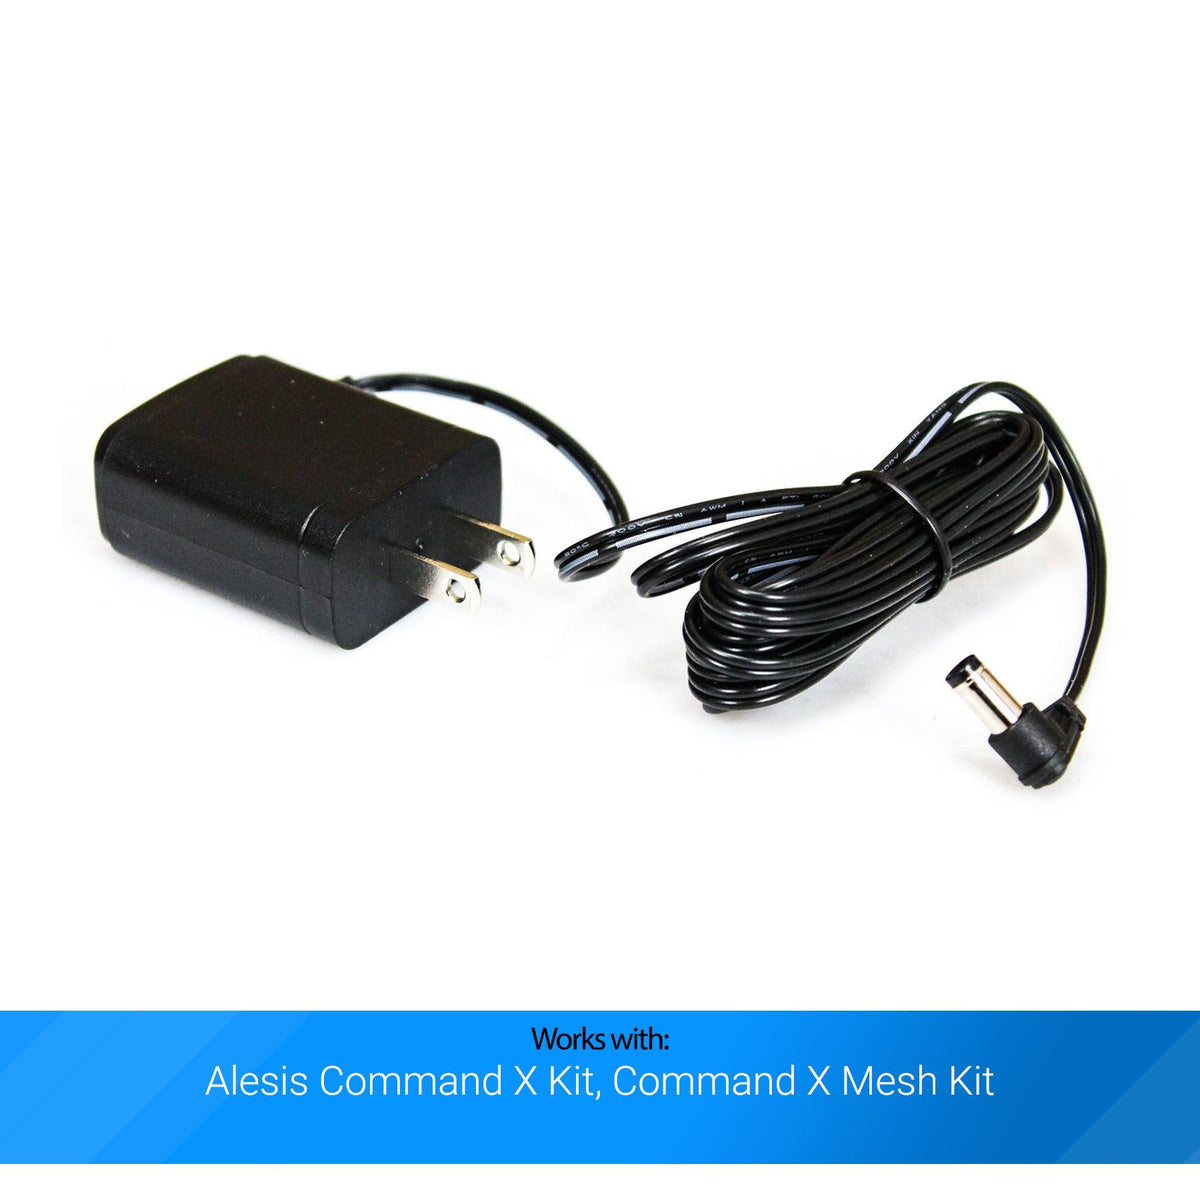 Alesis Command X Kit / Command X Mesh Kit Power Adapter